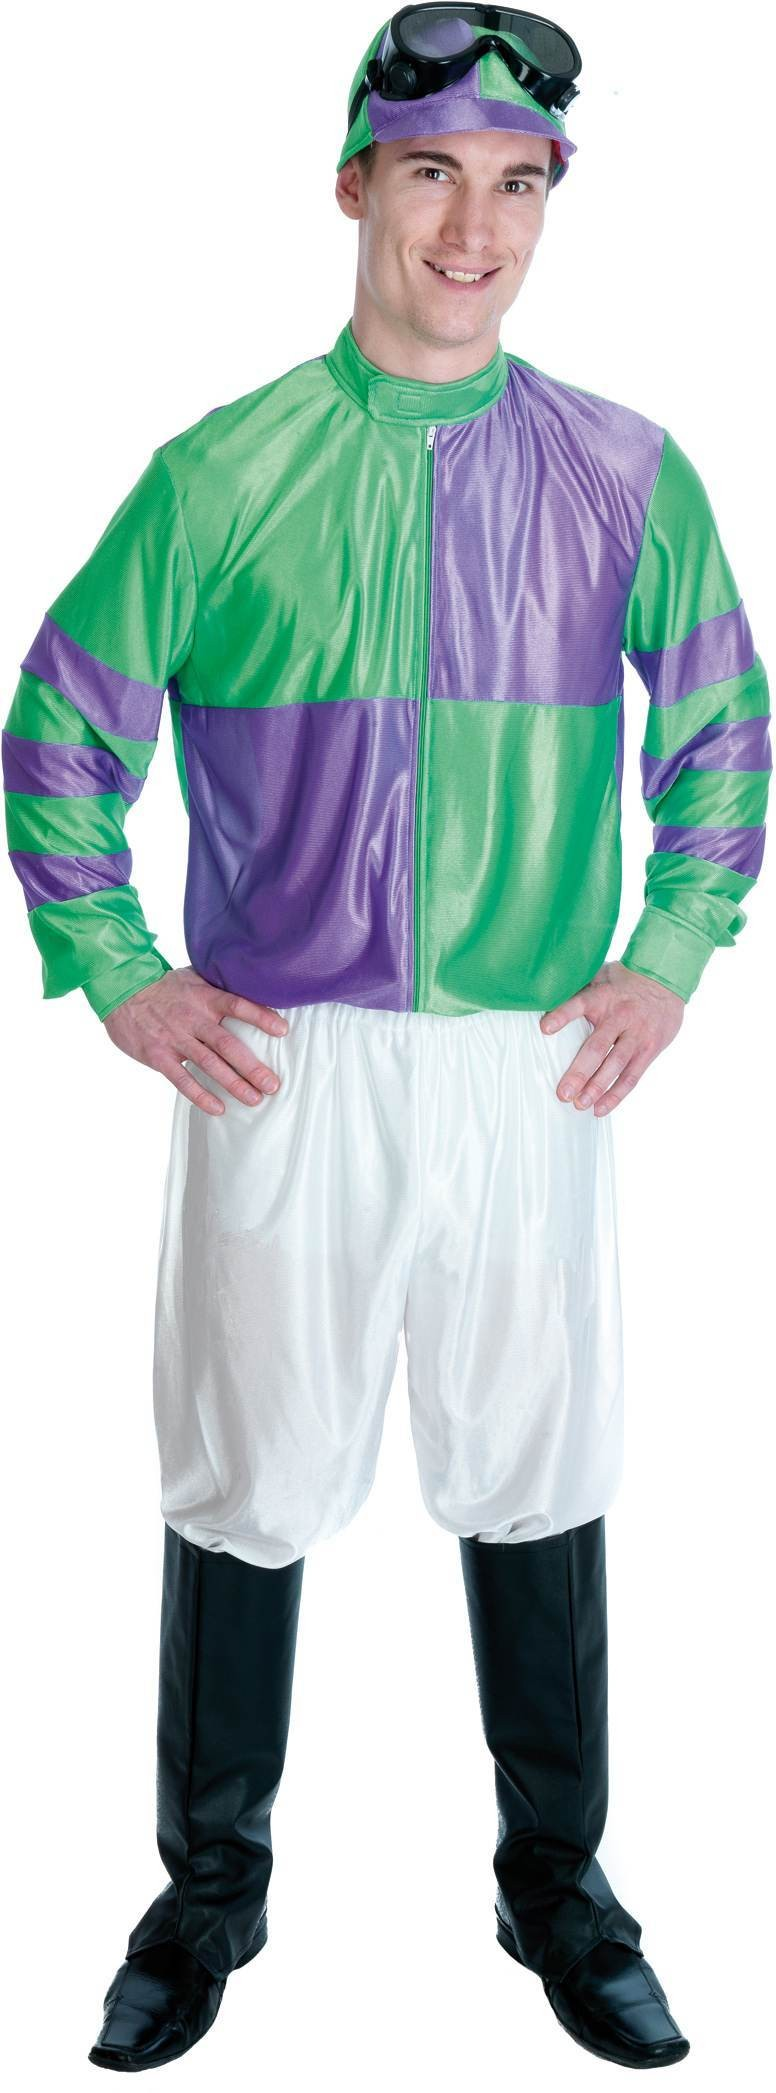 Jockey Costume (Green And Purple) Fancy Dress Costume (Hen & Stag)